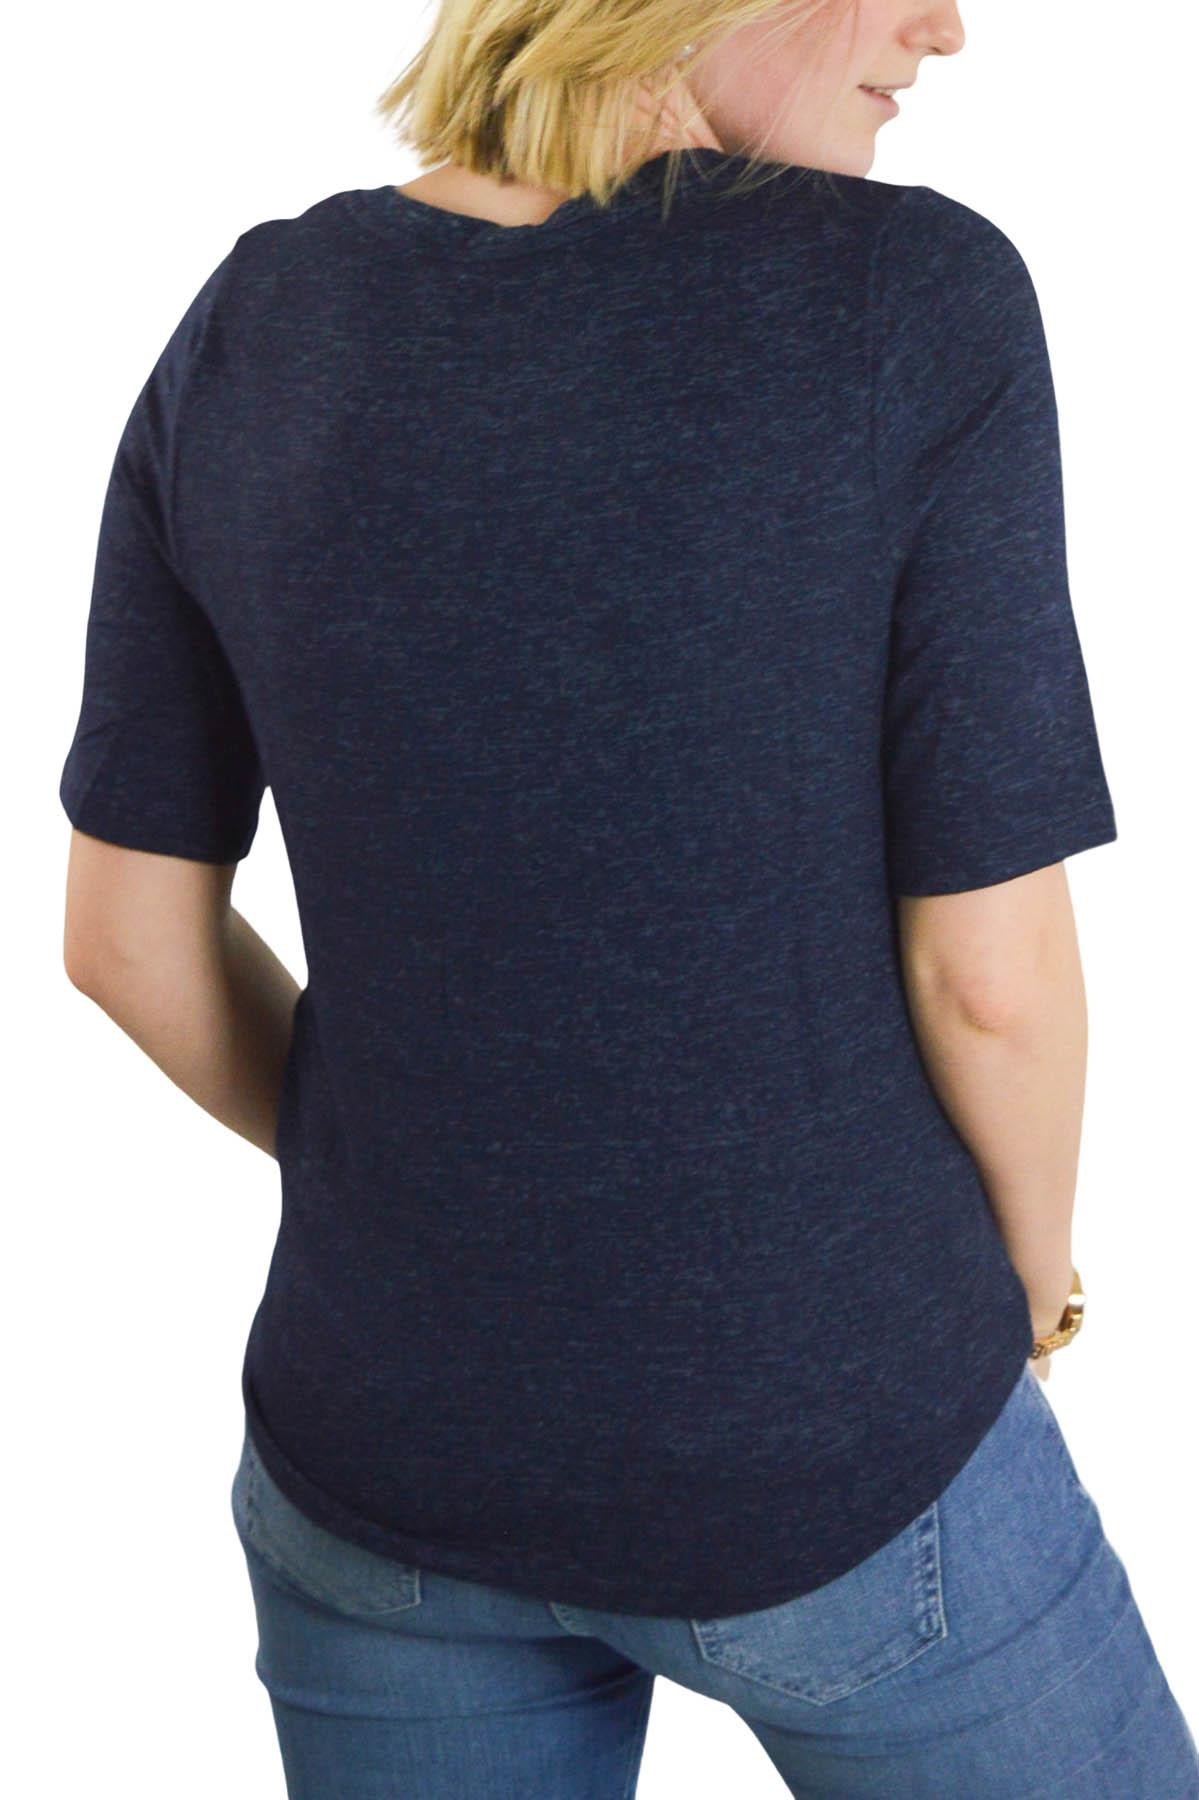 Ex-M-amp-S-Round-Neck-Fine-Knit-Short-Sleeve-Jumper-Top-Pale-Pink-or-Navy-Size-8-24 thumbnail 10